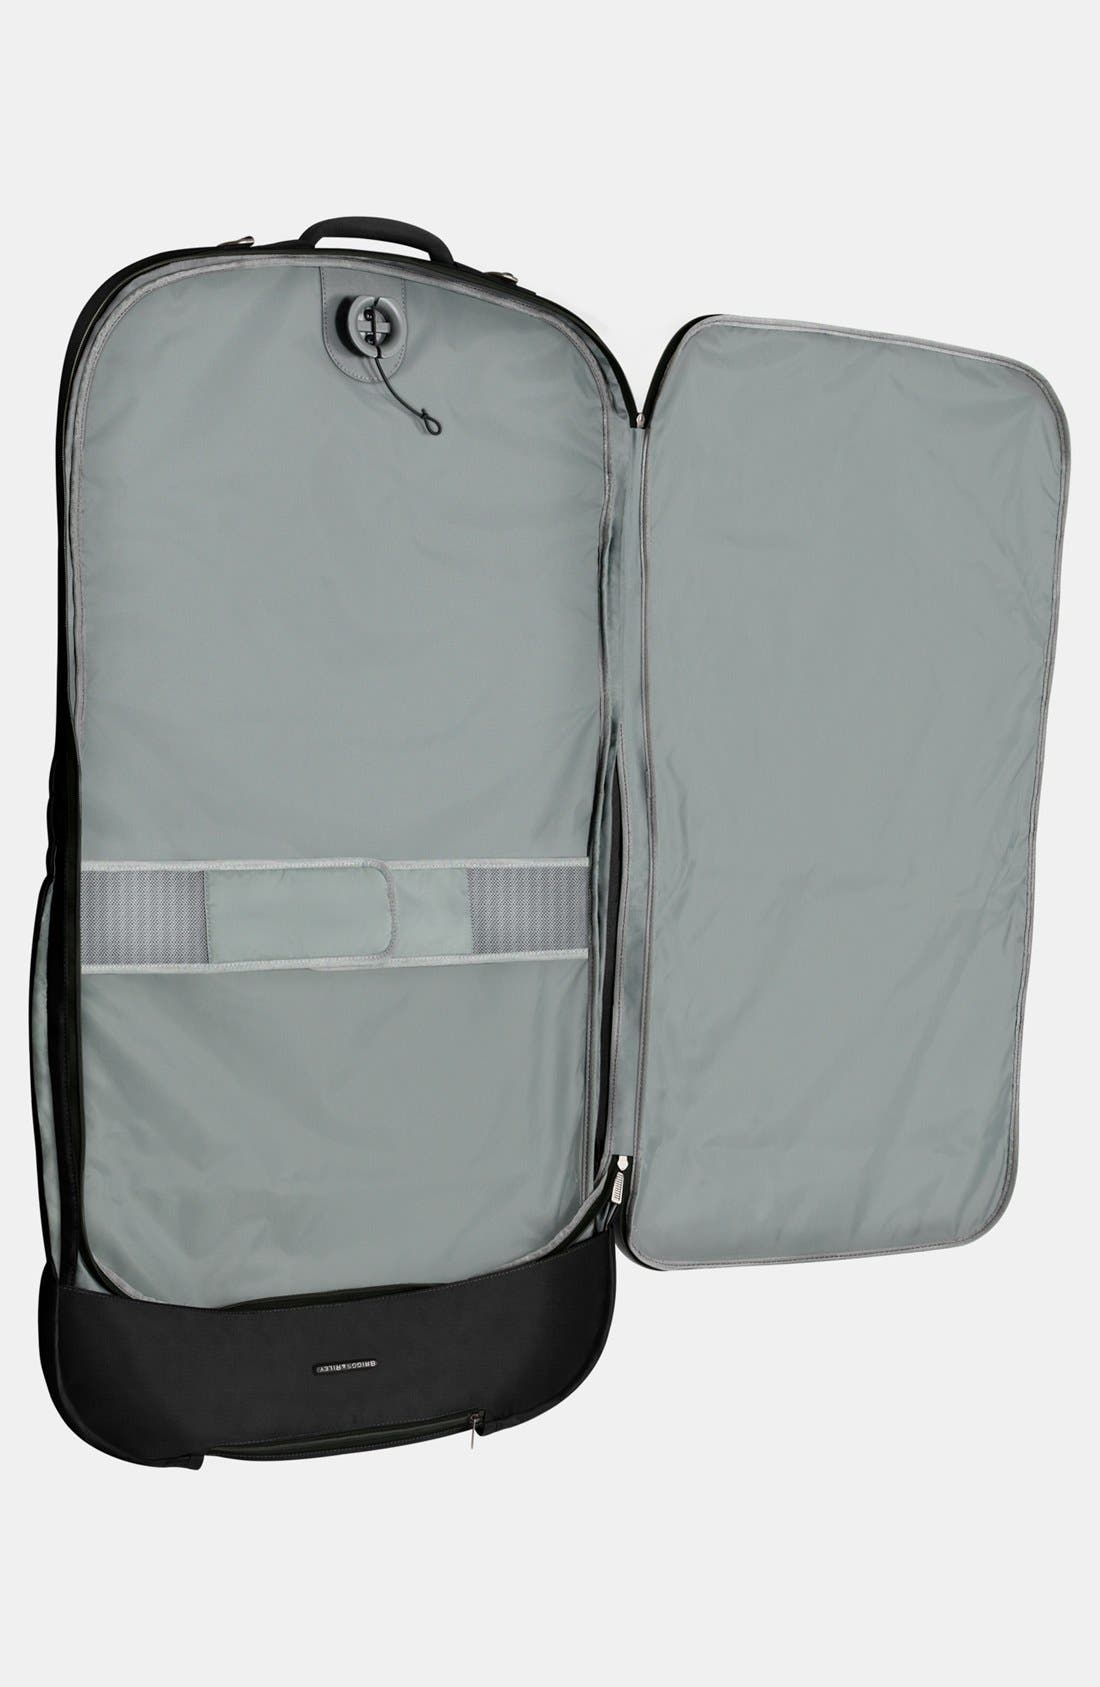 Alternate Image 2  - Briggs & Riley 'Transcend Deluxe' Garment Bag